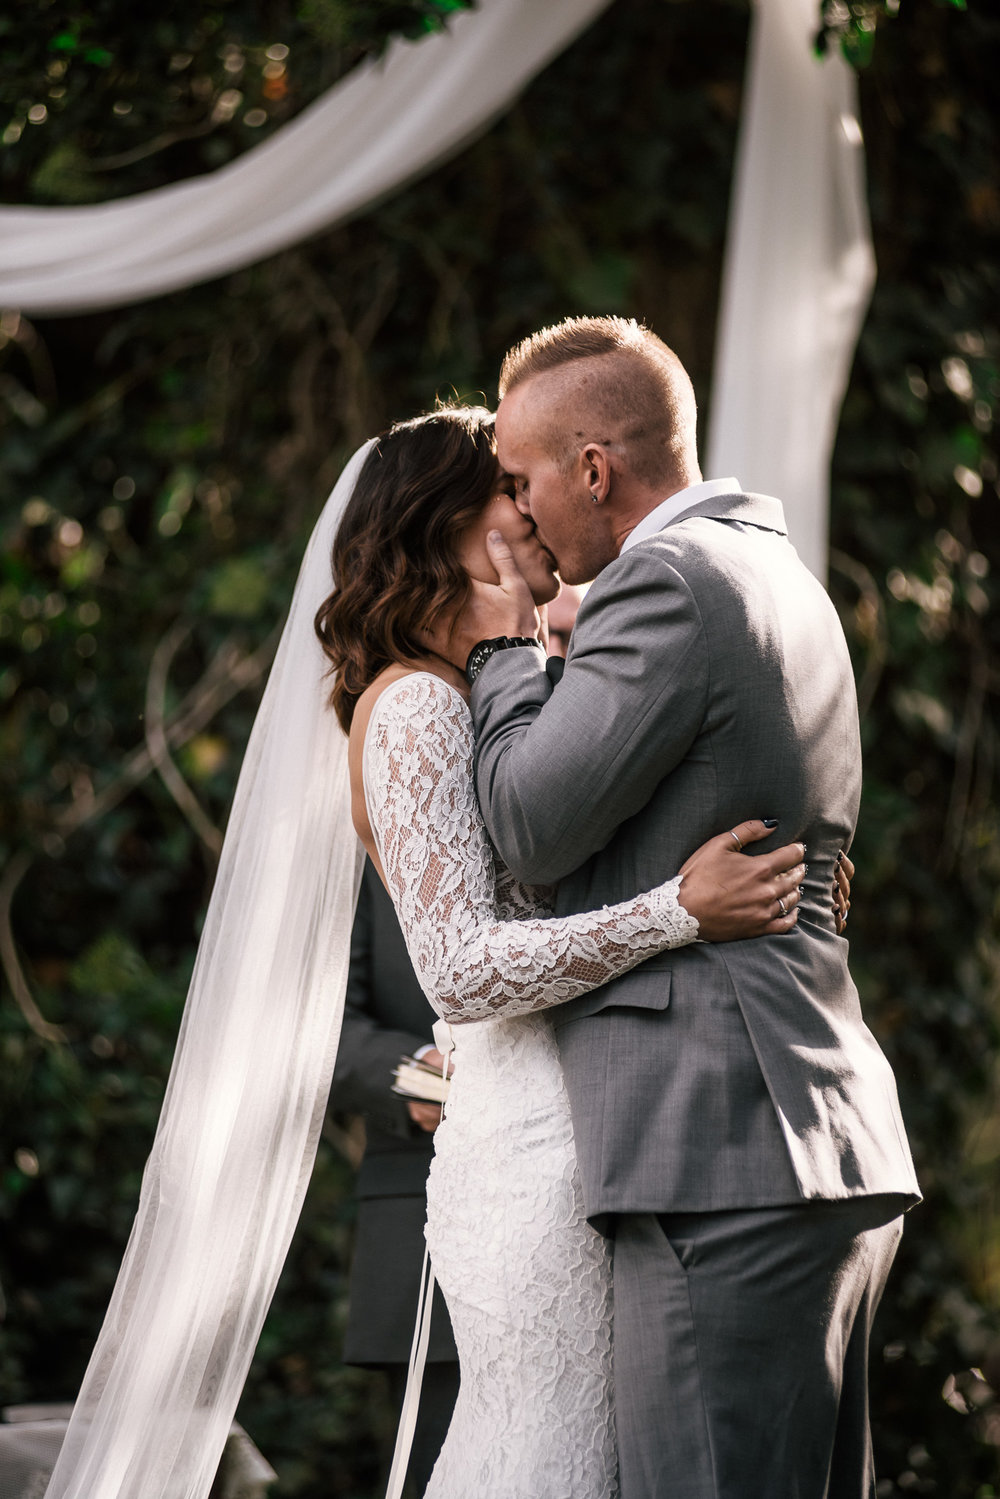 romantic first kiss at rustic pymm ranch wedding venue in winchester california